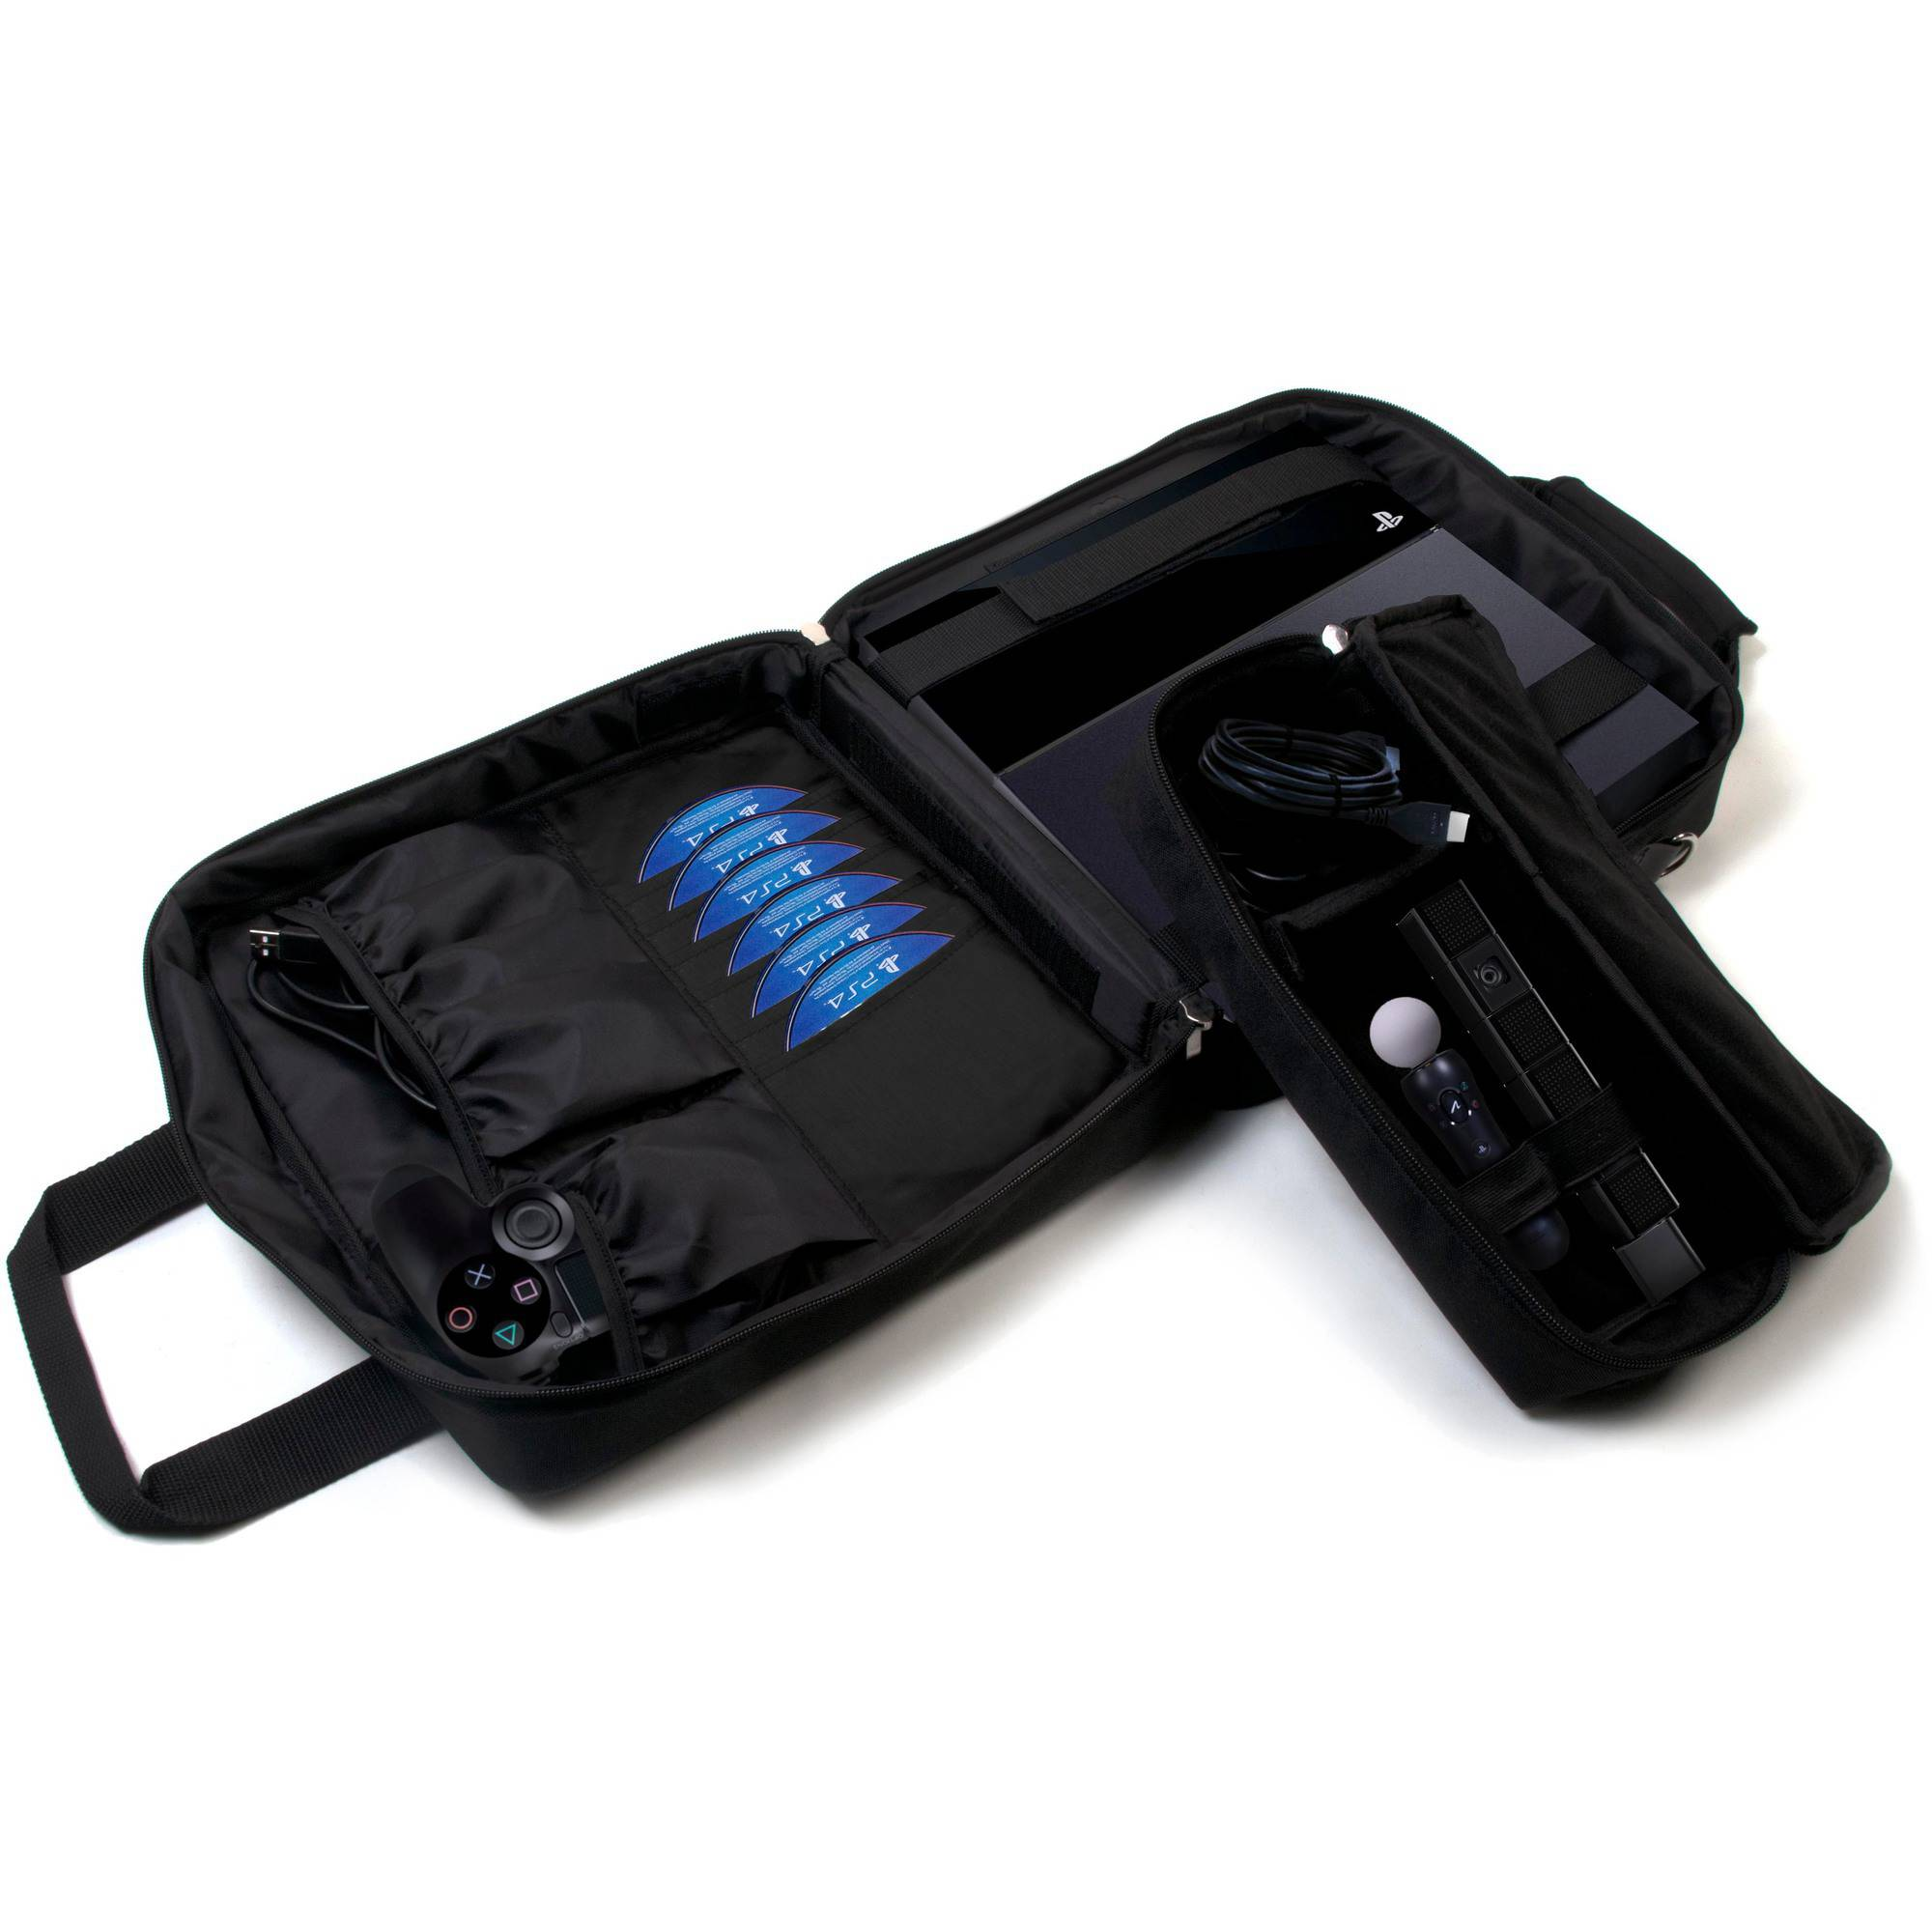 CTA Digital Ps4-mfc Multi-Function Carry Case for PlayStation 4 and PlayStation 3